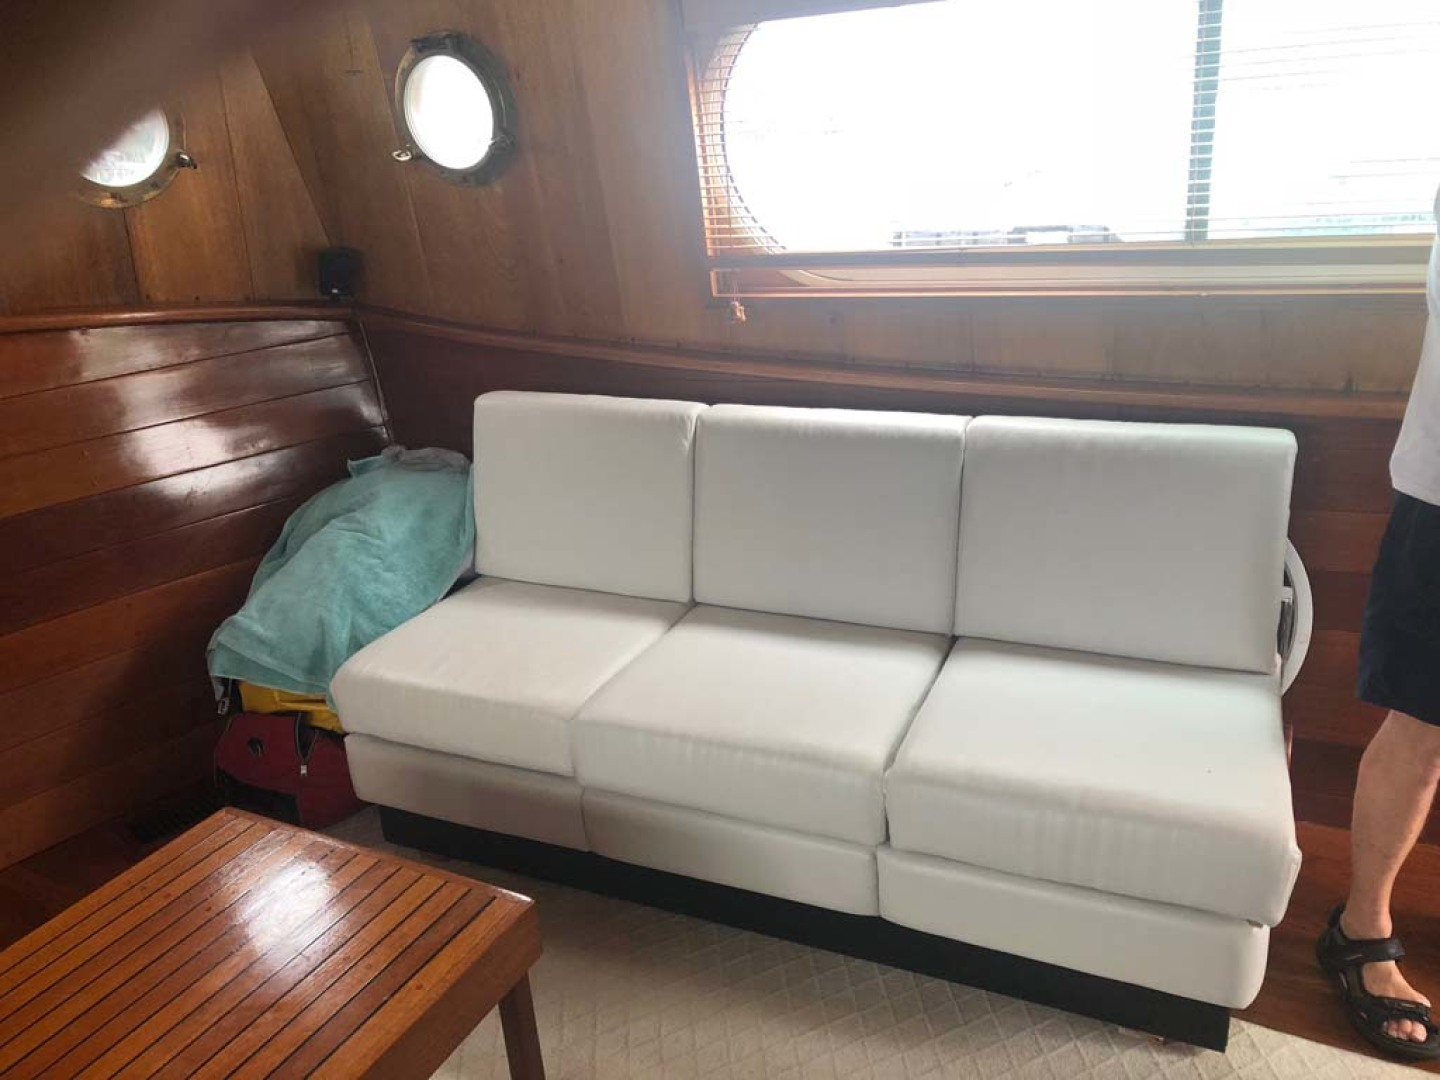 Custom-Durbeck North Sea Trawler 1982-Phoenix Wickford-Rhode Island-United States-Salon Settee-1078225 | Thumbnail